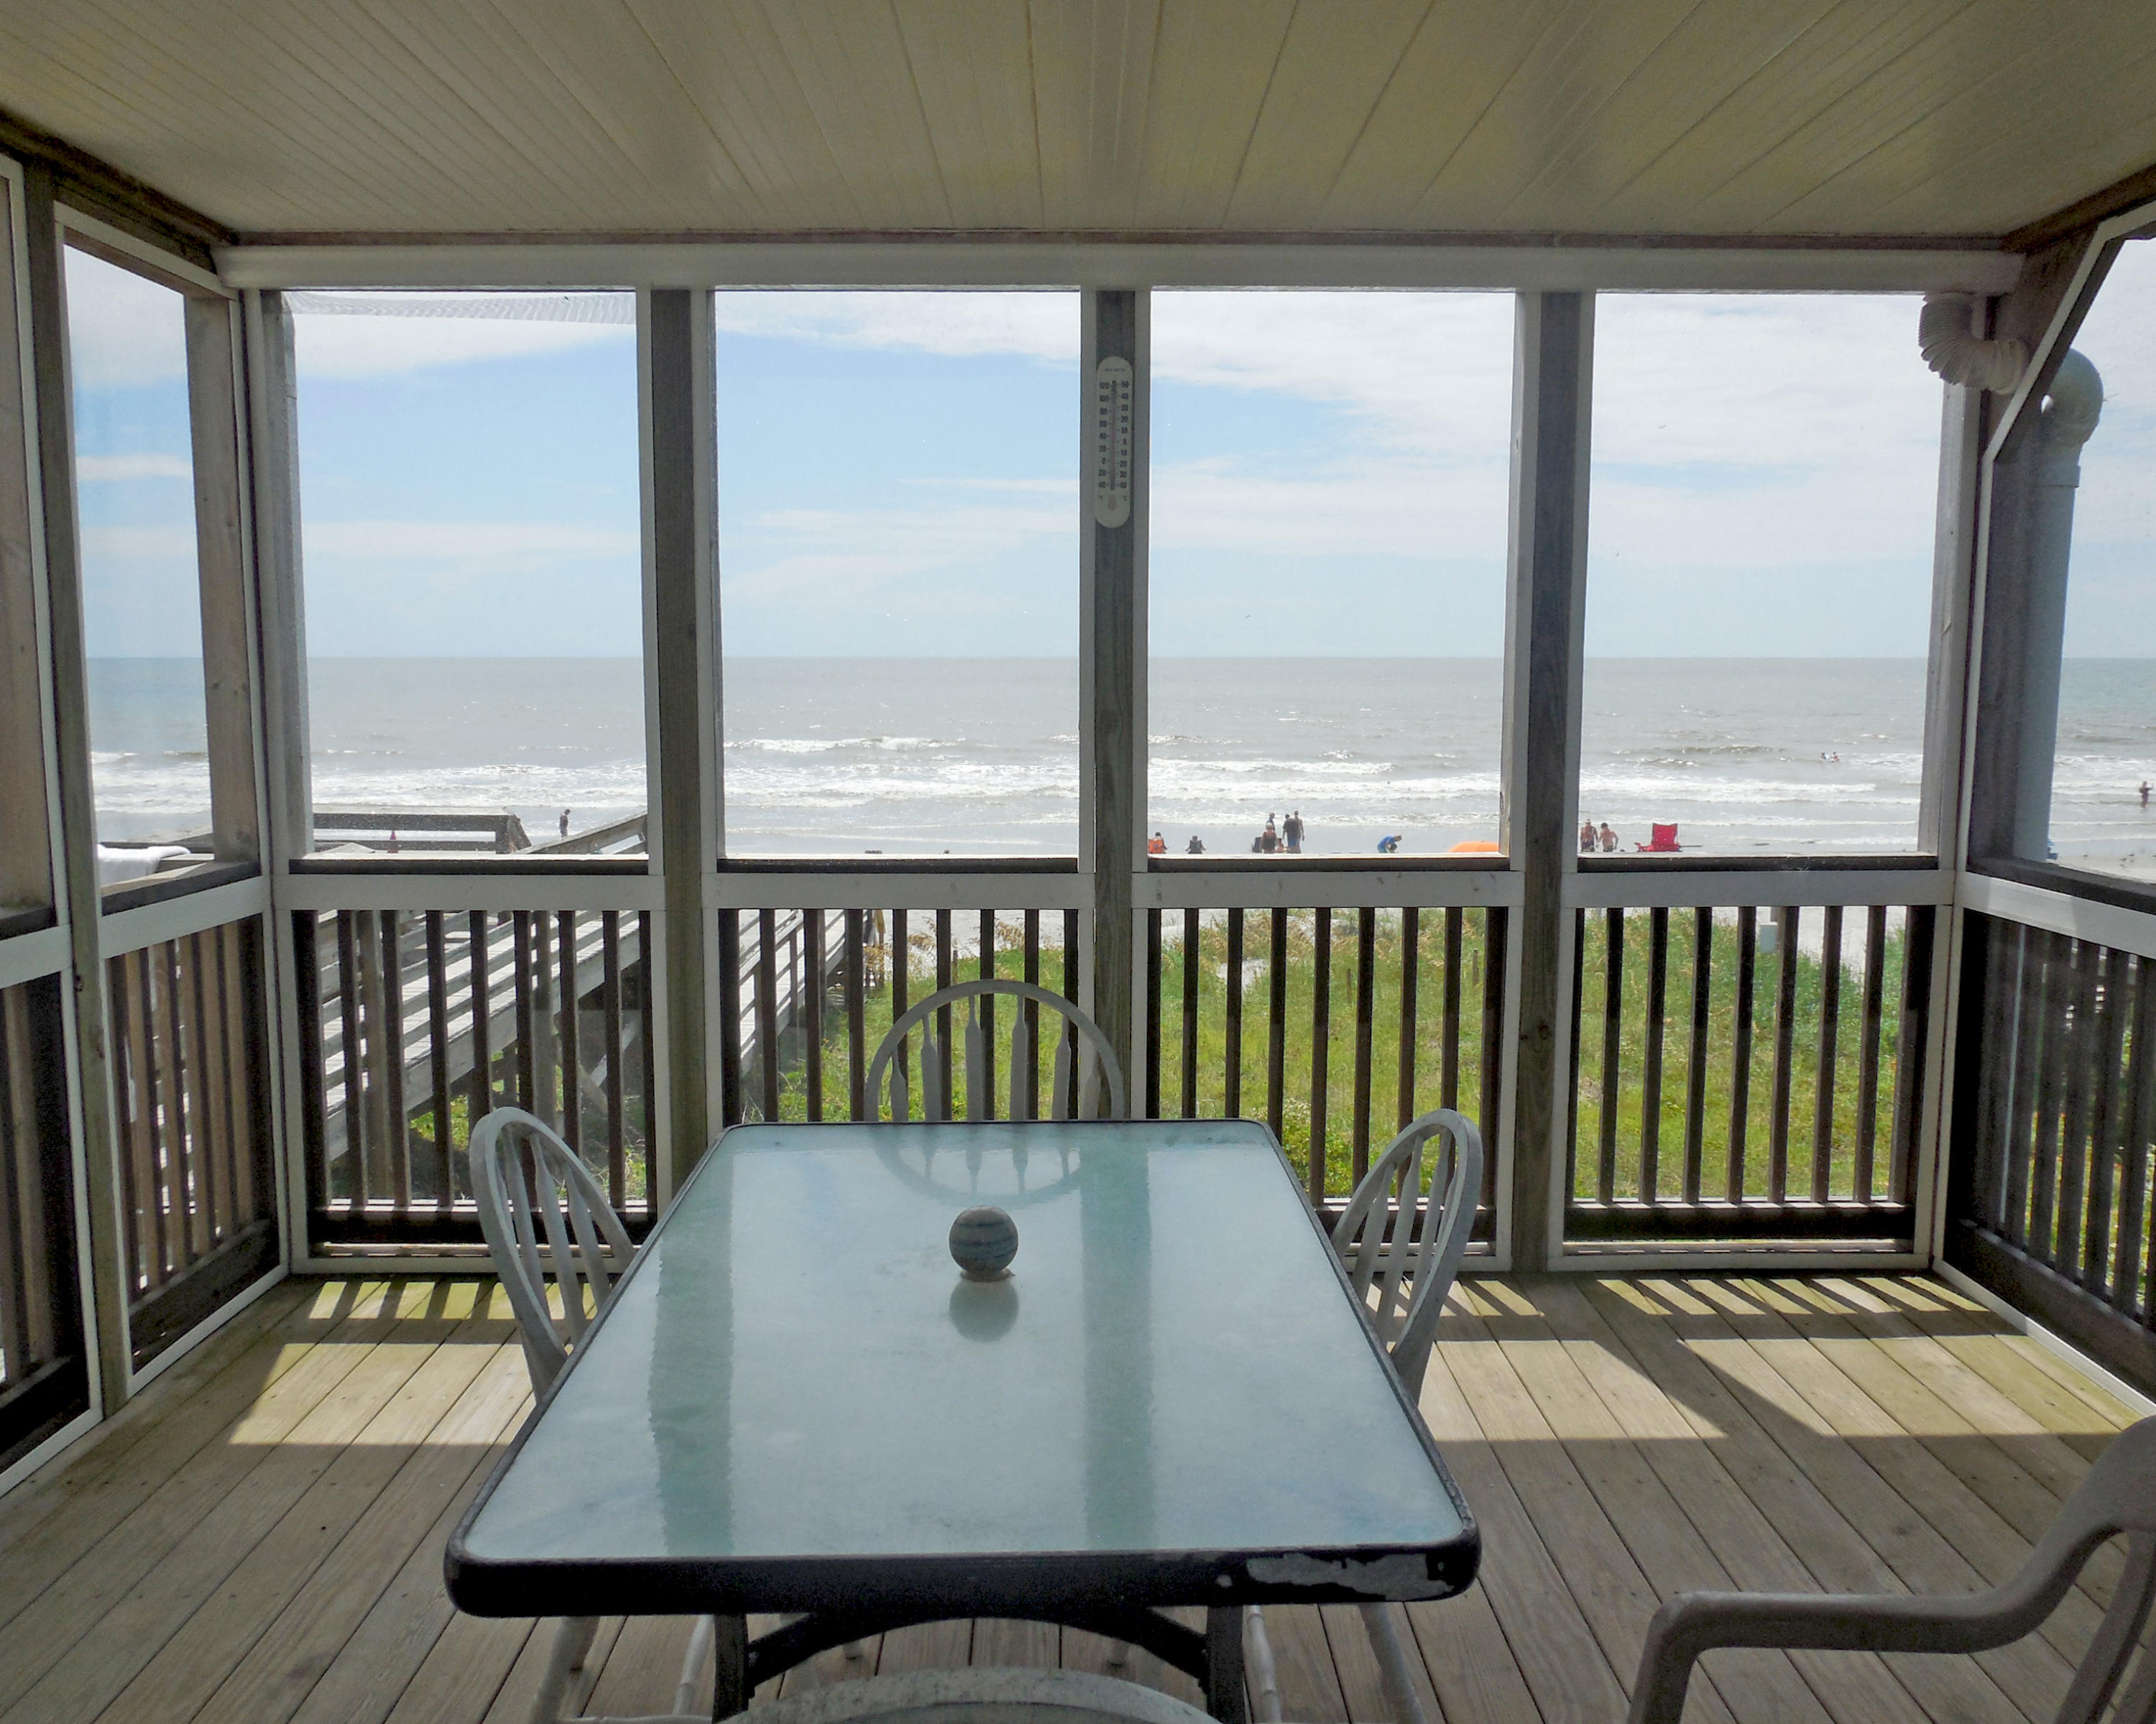 Folly Beach Homes For Sale - 801 Arctic, Folly Beach, SC - 24